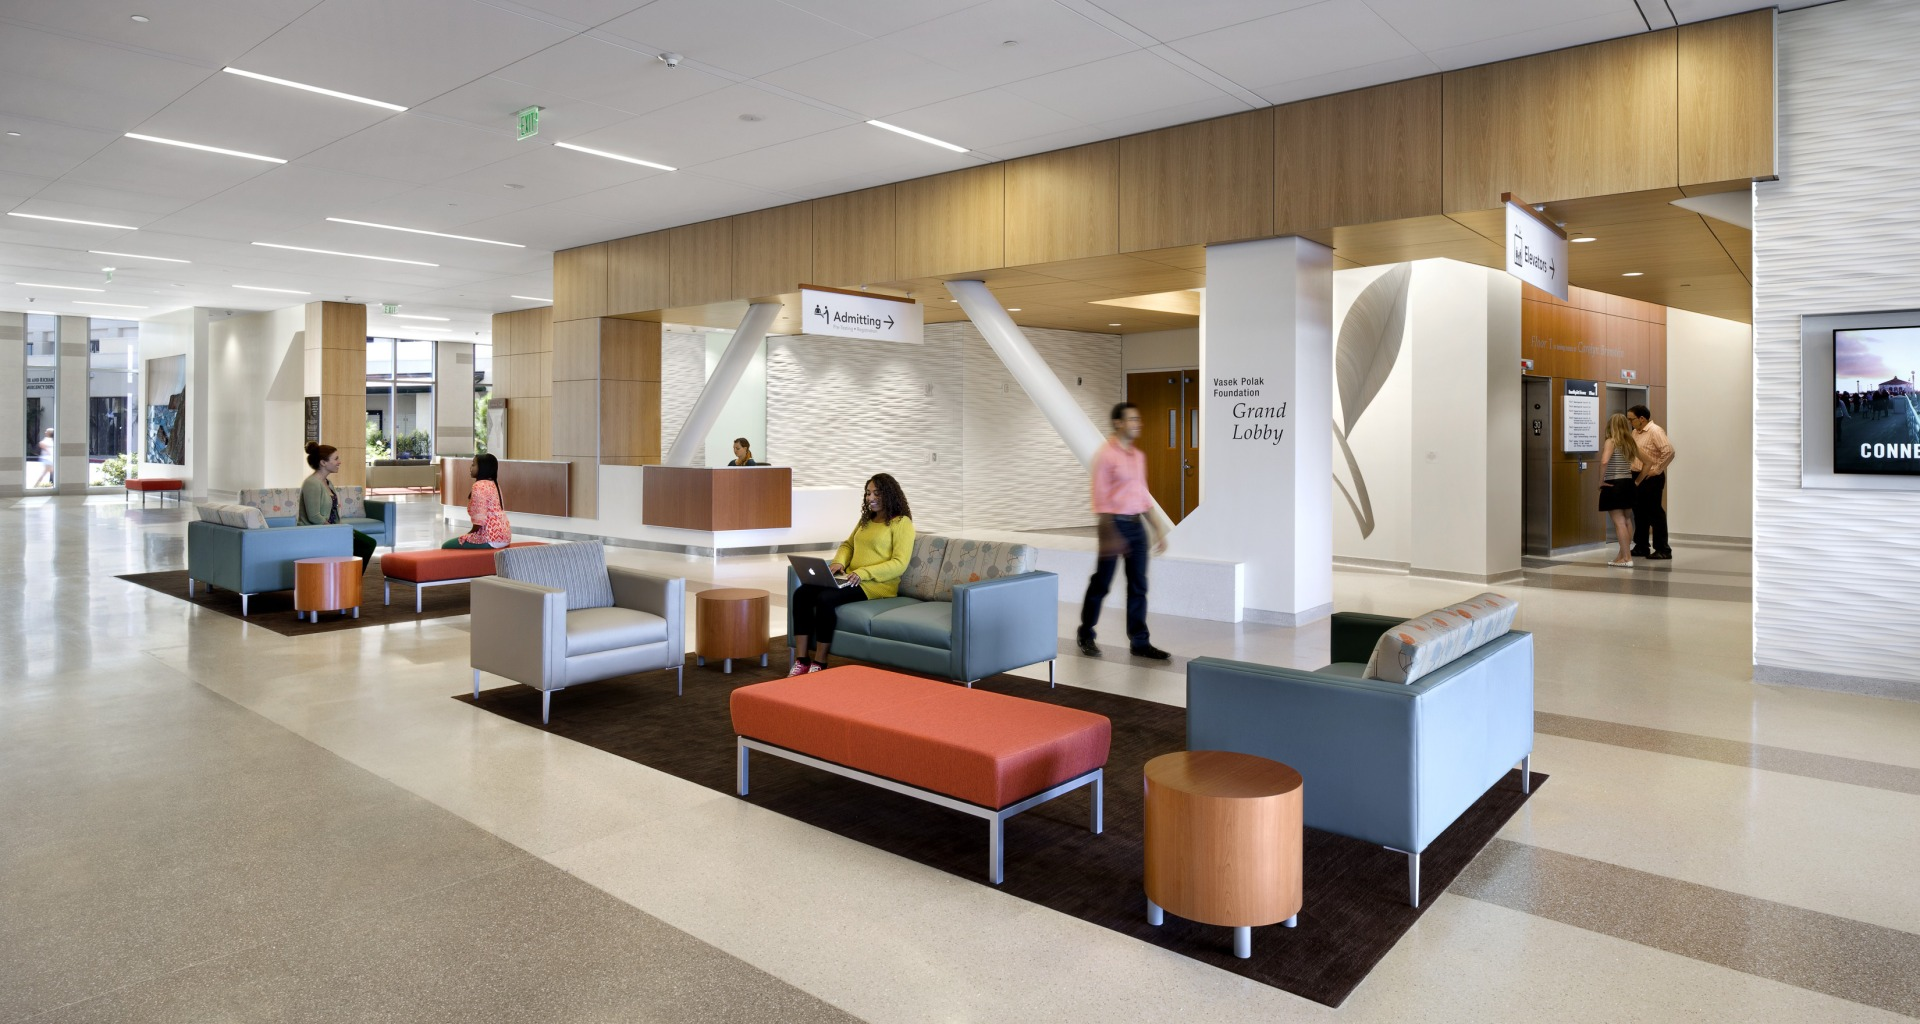 Hospital lobbies can be designed to provide areas for relaxation.